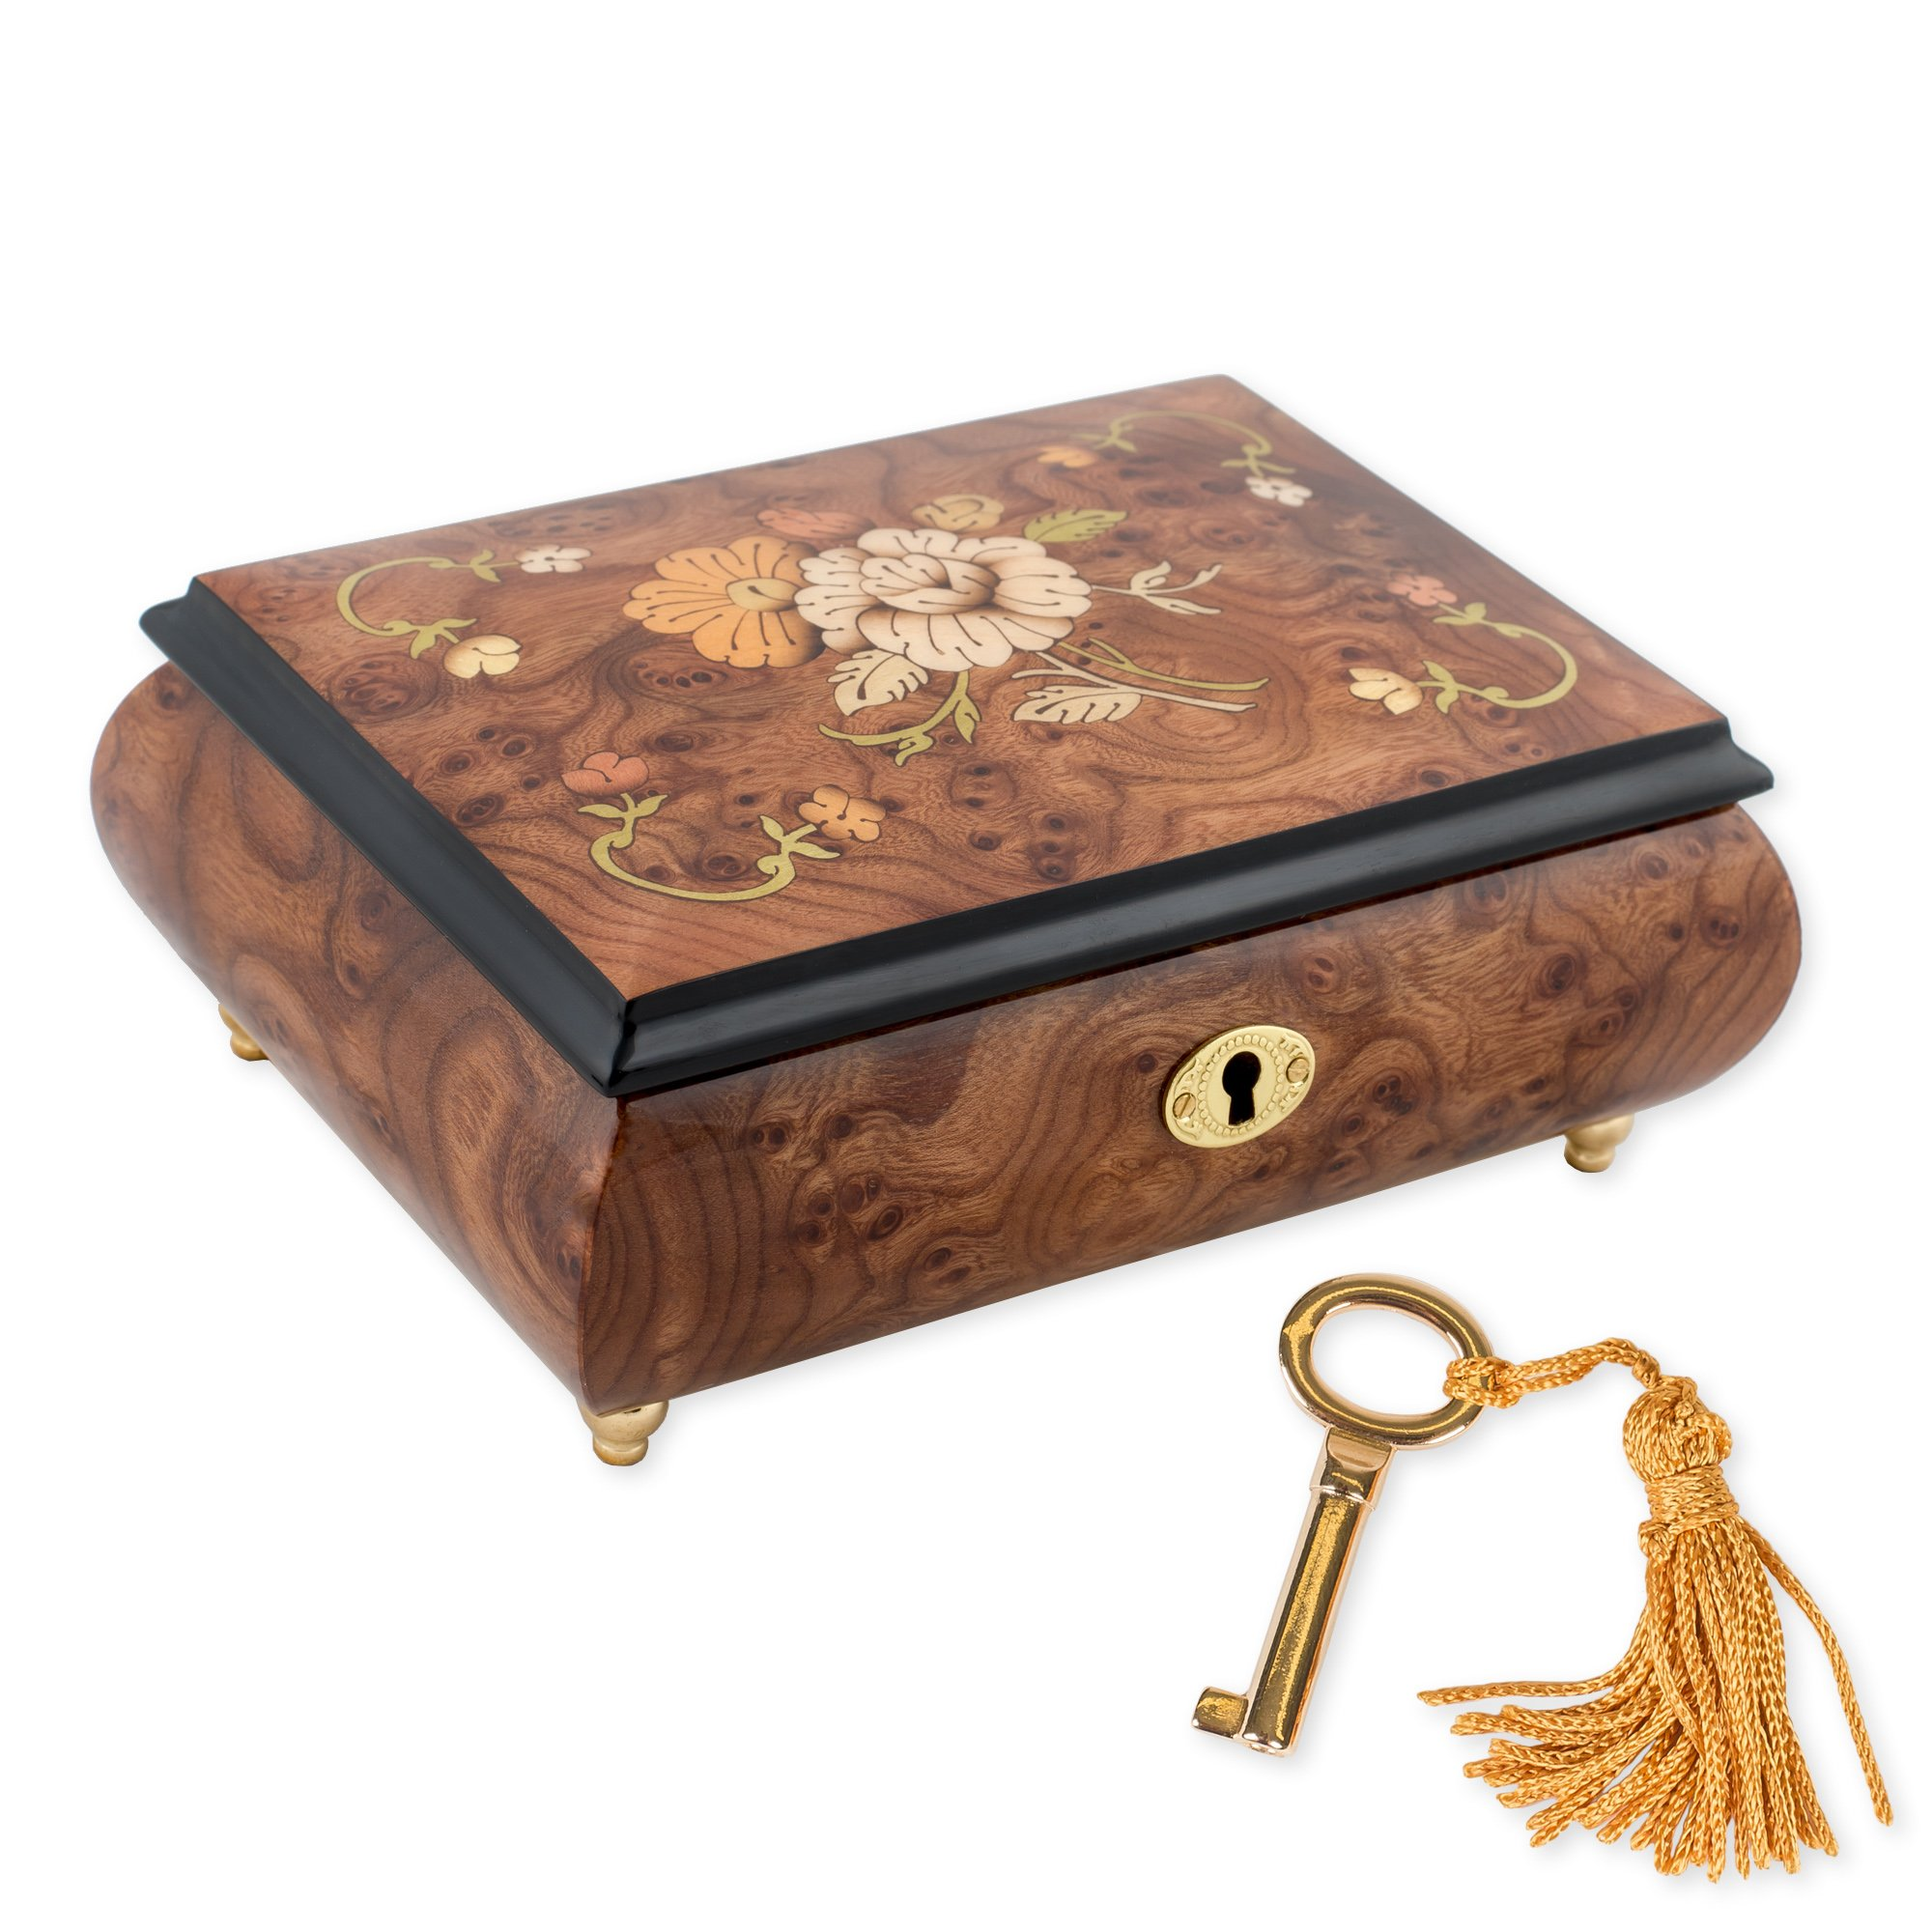 Floral Italian Hand Crafted Inlaid Wood Jewelry Music Box Plays Cantana 147